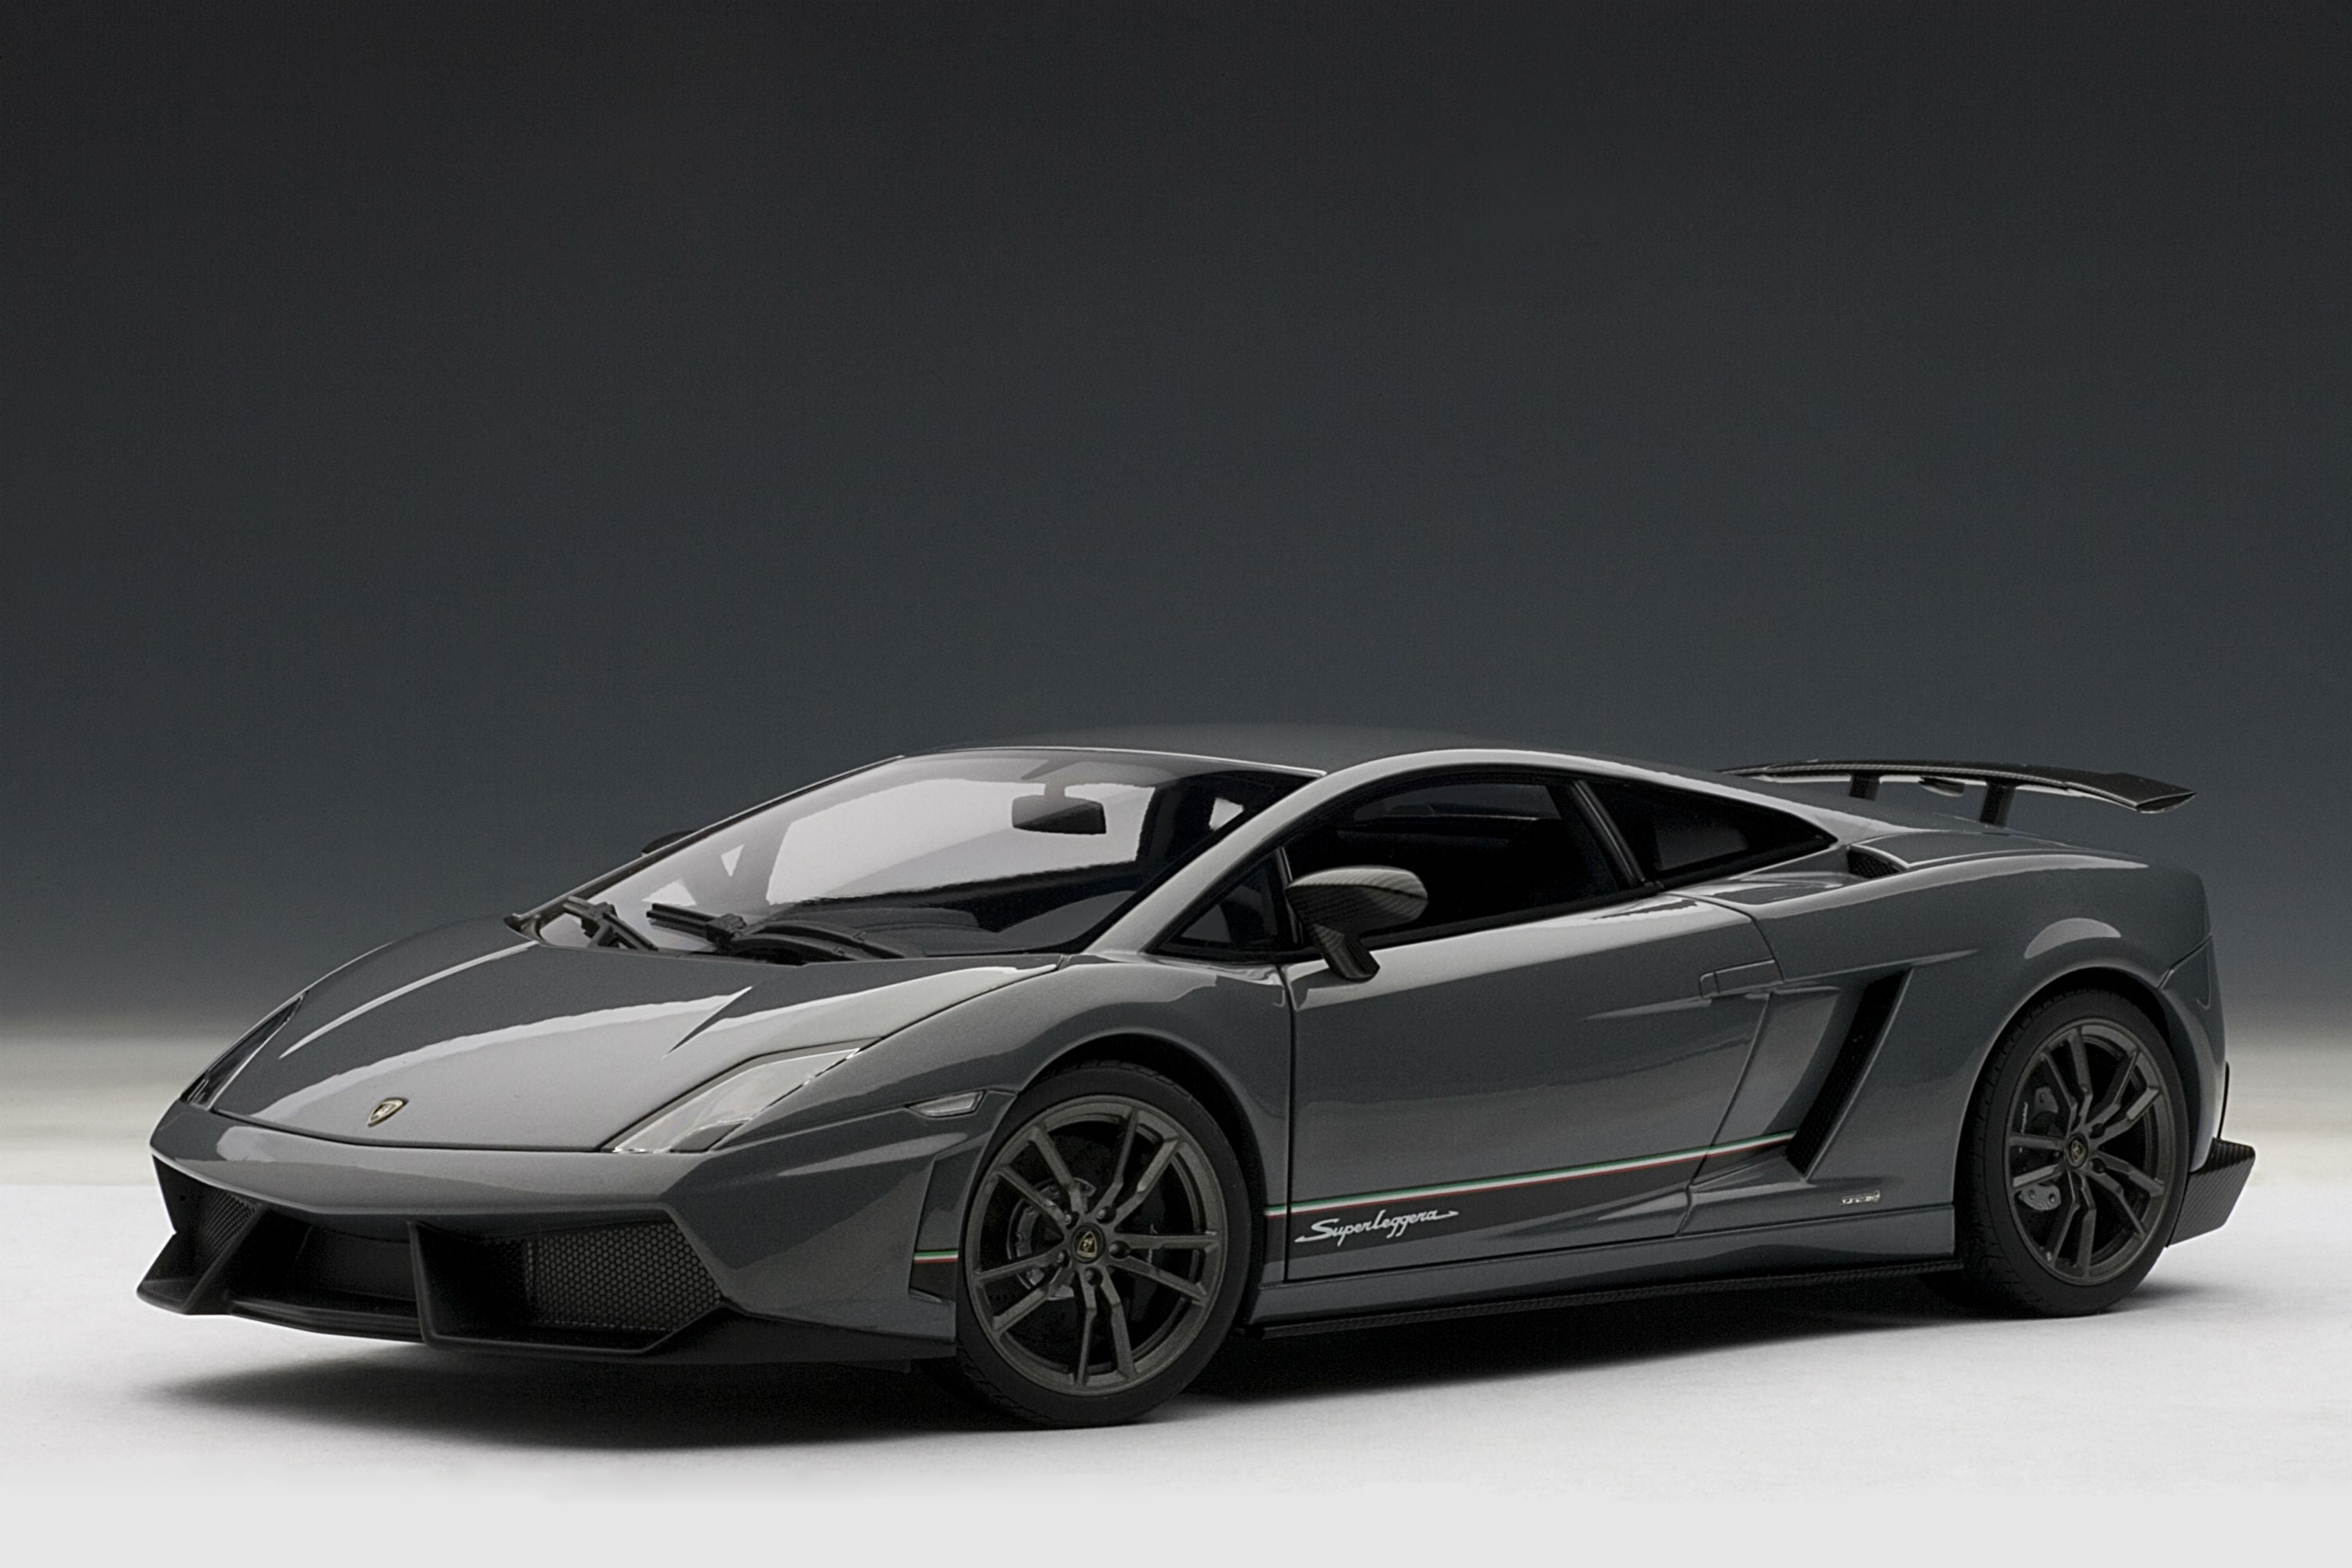 Lamborghini Gallardo LP 570-4 Superleggera | 1:18-Scale Diecast Model Car by AUTOart | Grey Variant